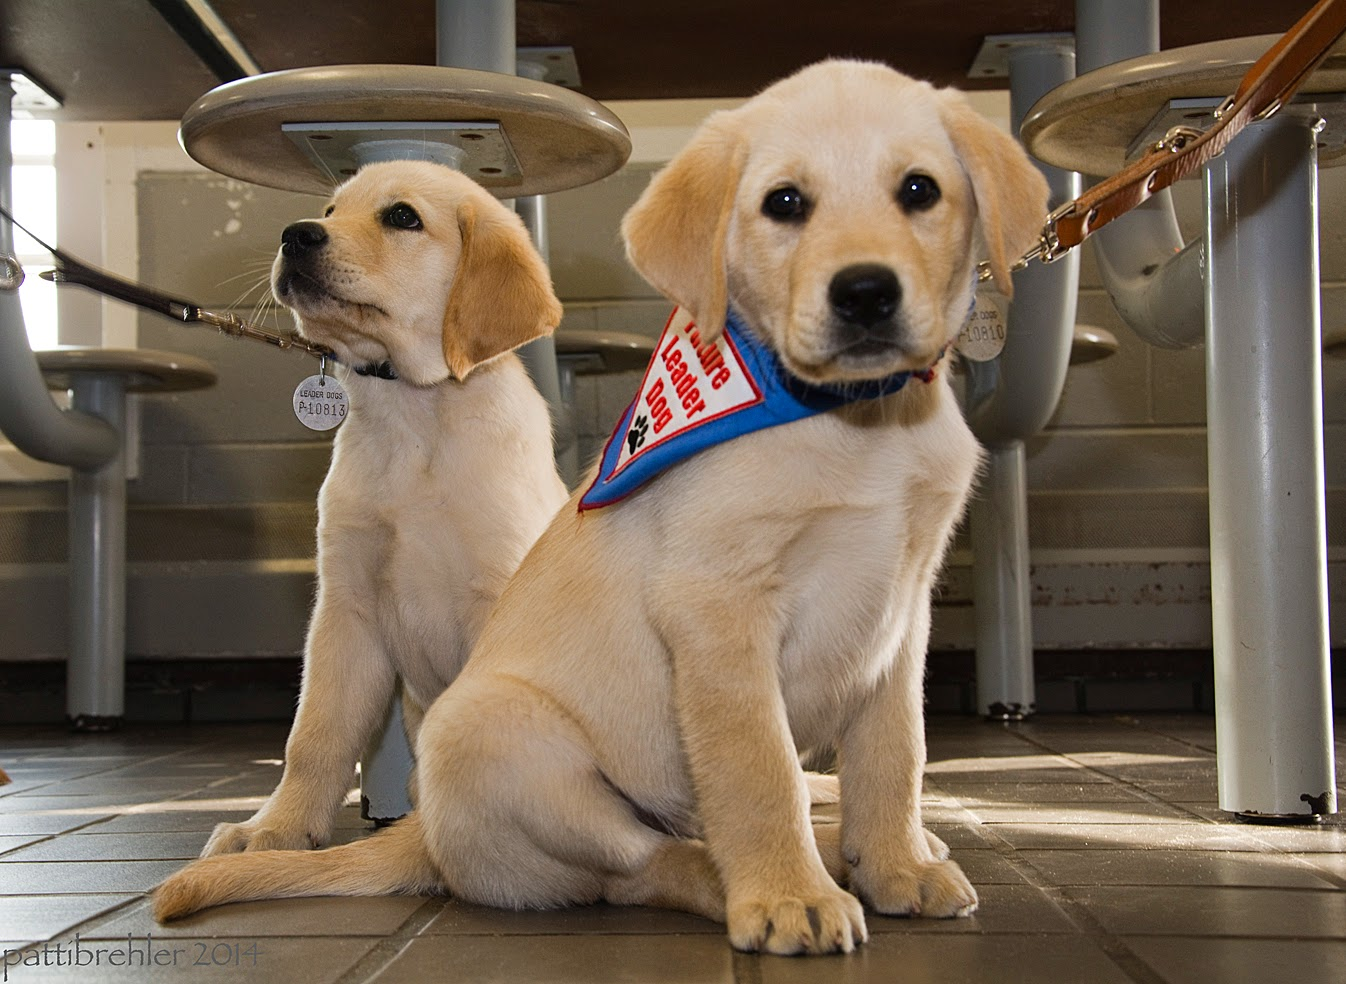 Two small yellow lab/golden retriever puppies are sitting on at tile floor like bookends. They are brothers and look like it. The puppy on the right is slightly ahead of the other and is looking right at the camera. He is wearing the blue Future Leader Dog bandana and his leash is going off to the right. The puppy on the left, slightly behind the other puppy, is looking up toward where his leash is going off to the left. There are stools behind the two puppies.